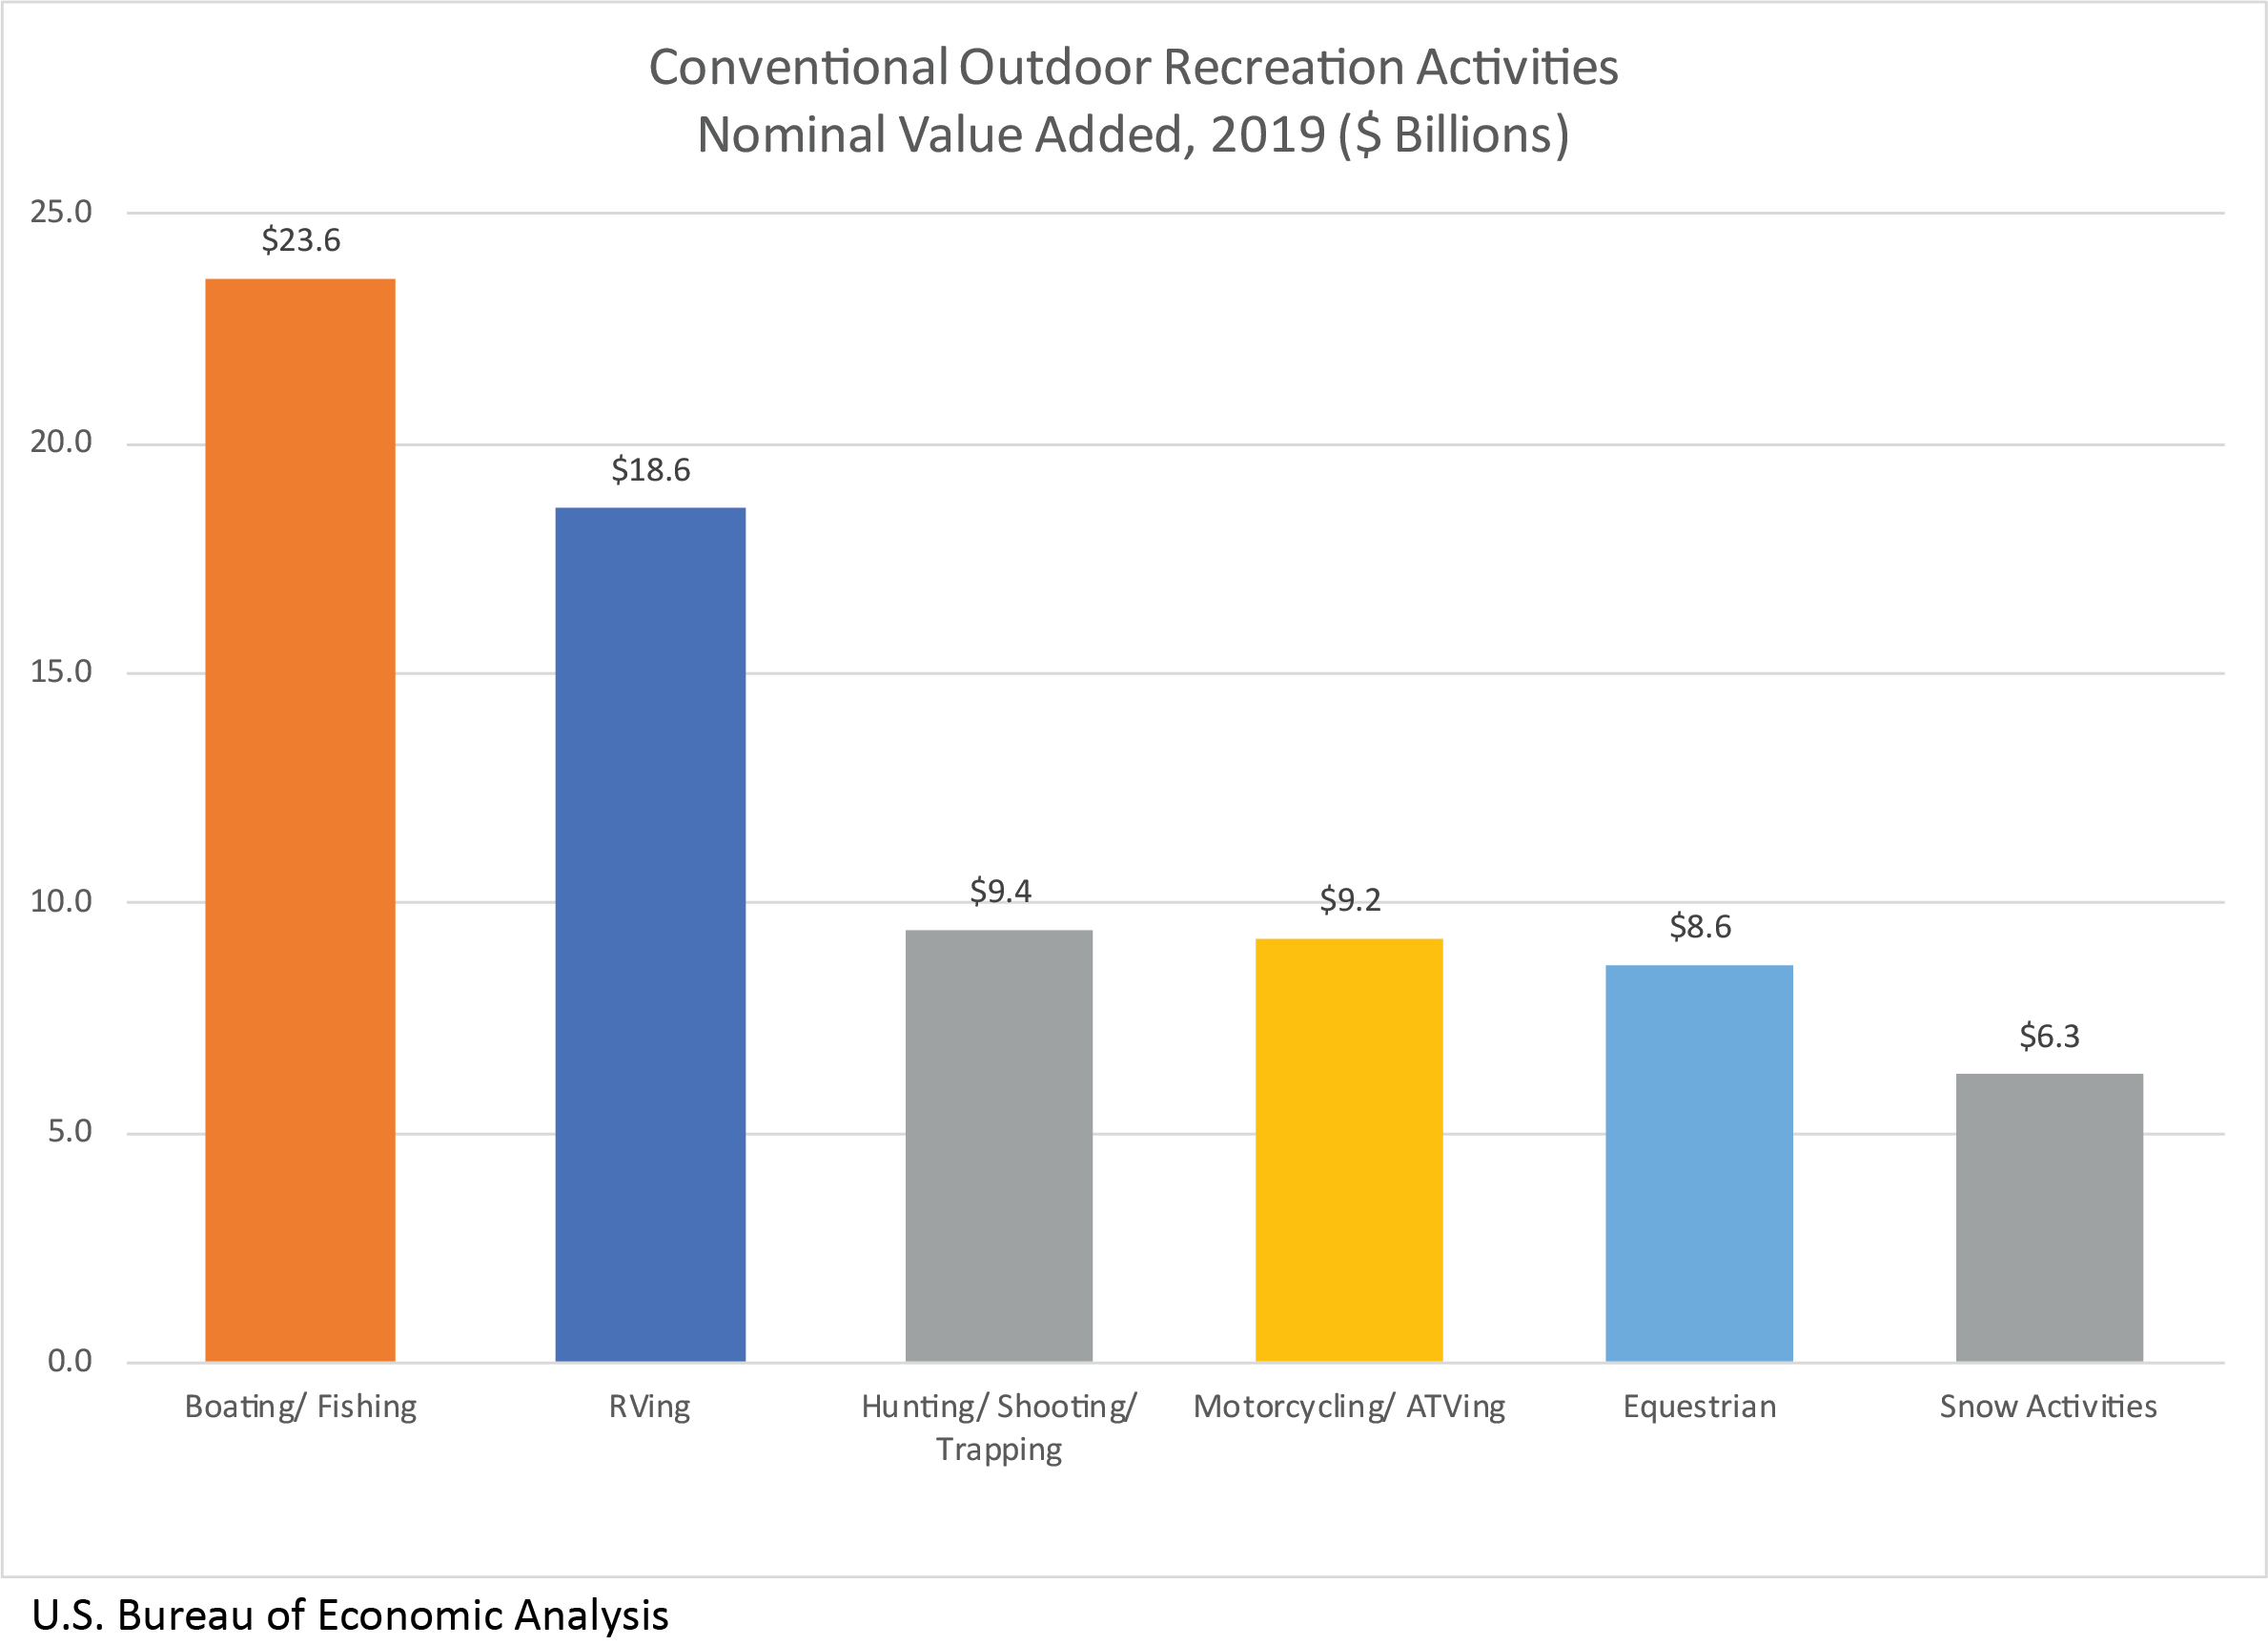 Chart: Conventional Outdoor Recreation Activities Nominal Value Added, 2019 ($ Billions)